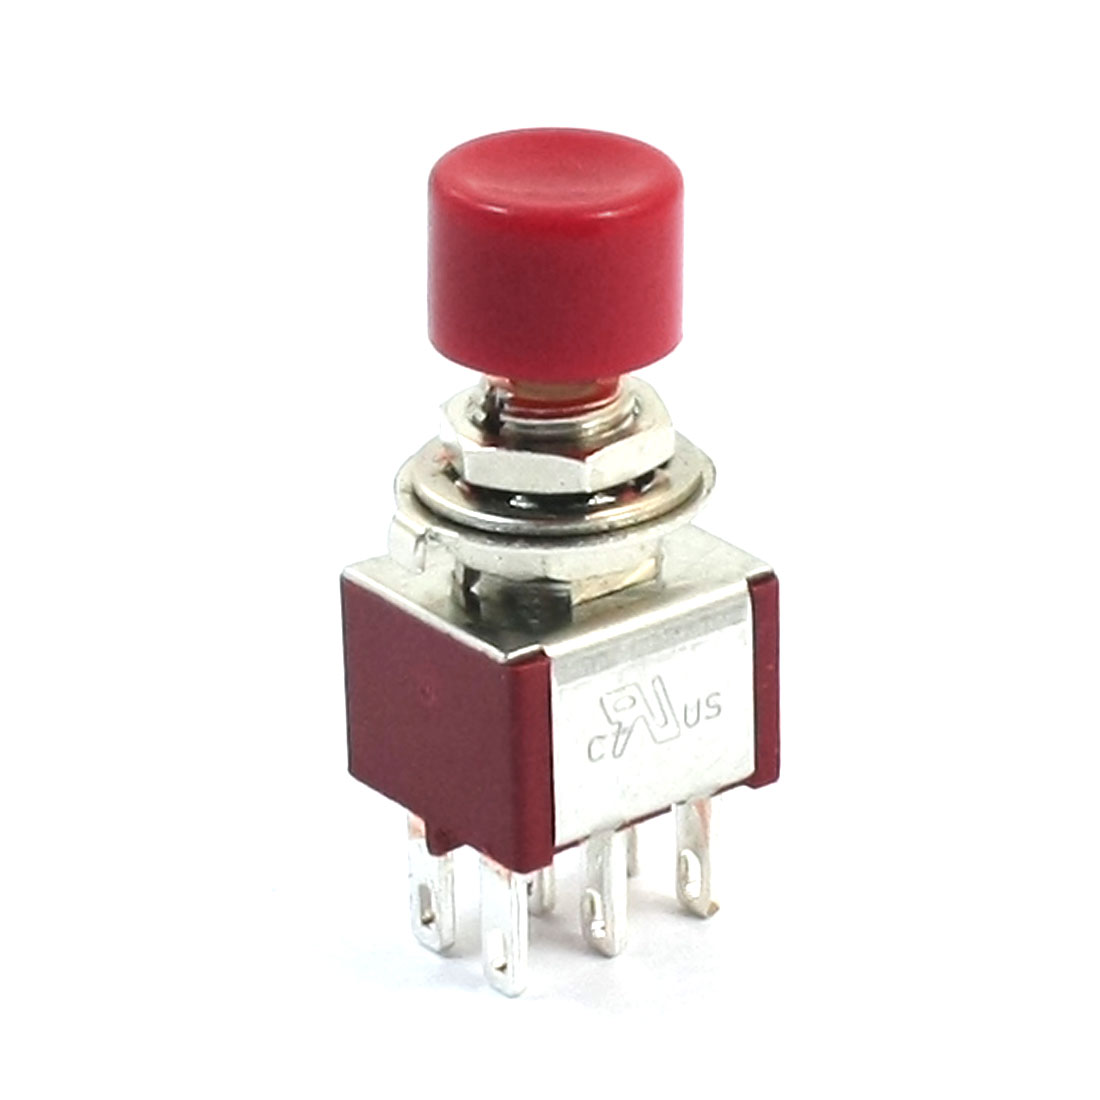 AC250V 2A 120V 5A 6Pin Terminals DPDT Momentary Red Pushbutton Switch